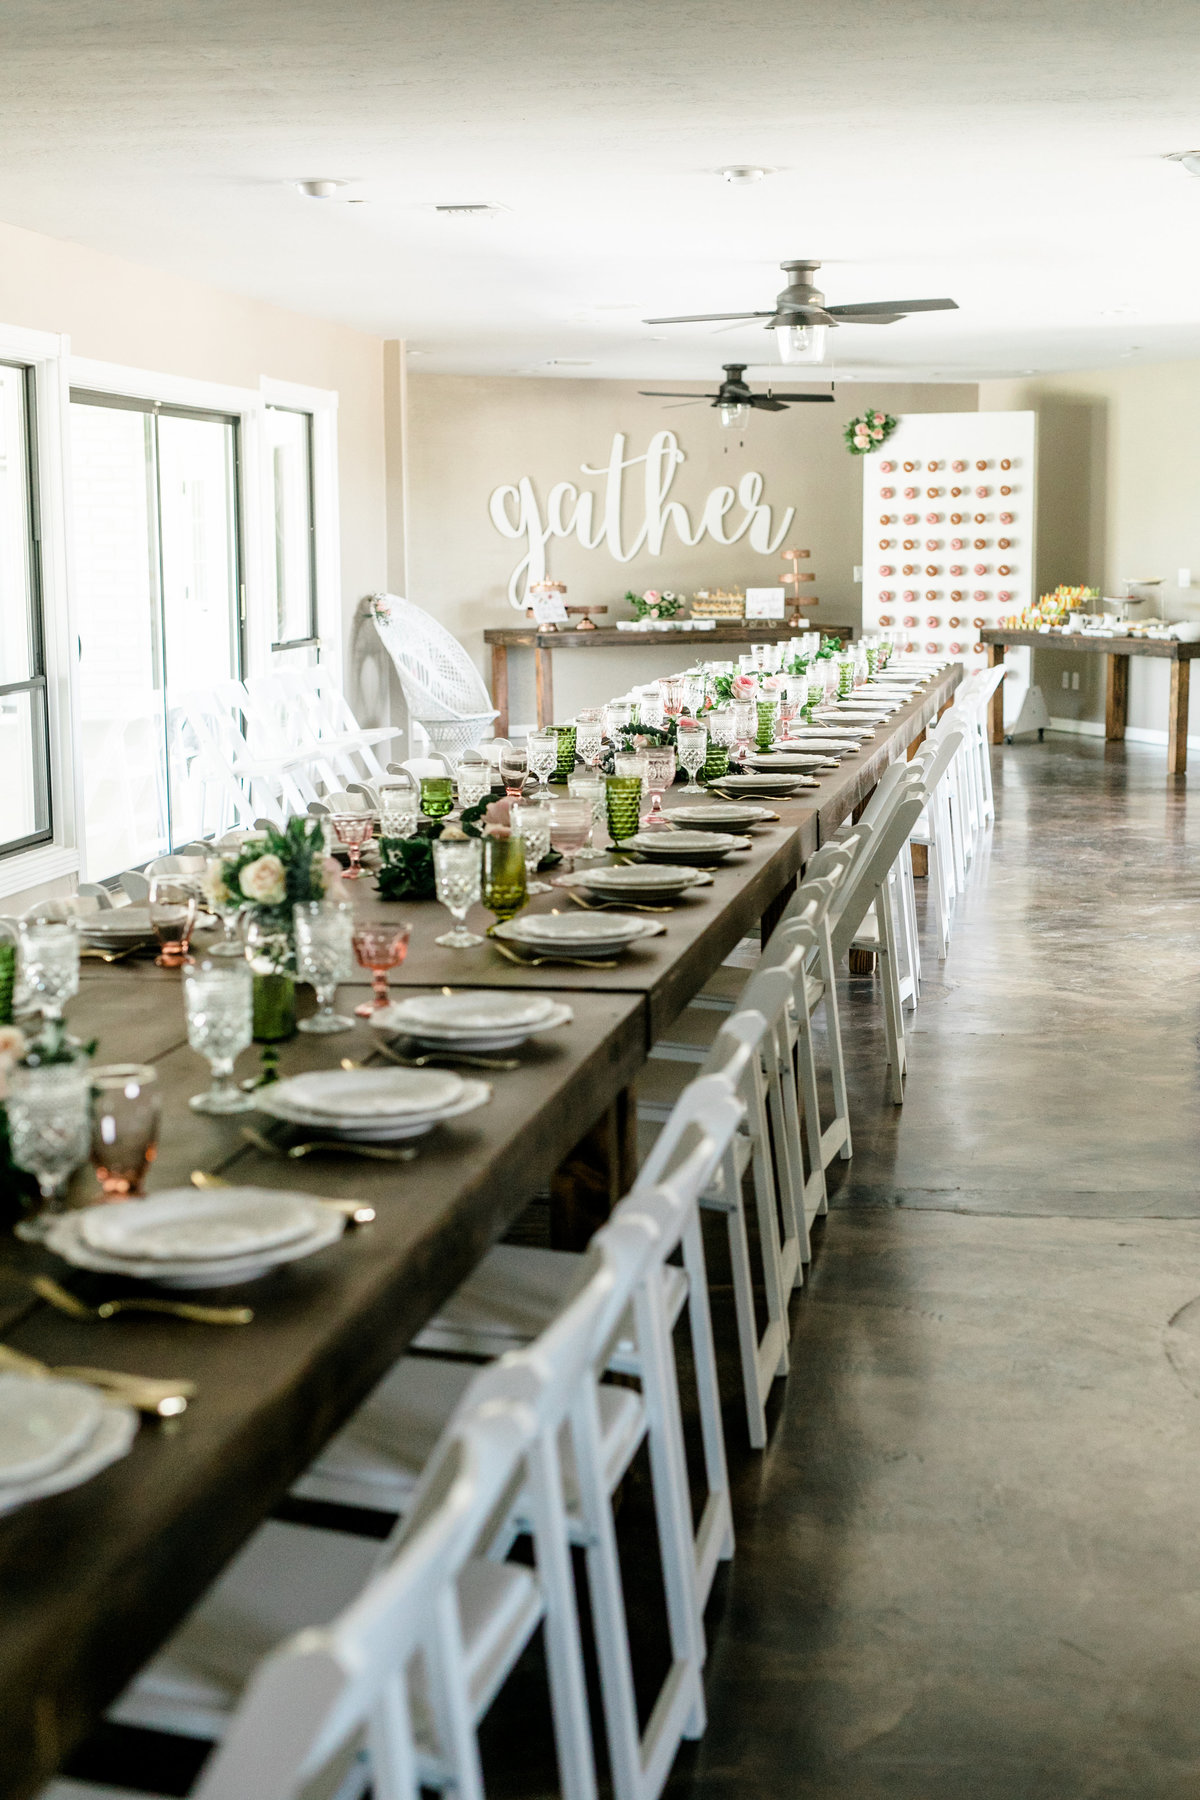 Arizona Urban Backyard Wedding and Event Venue